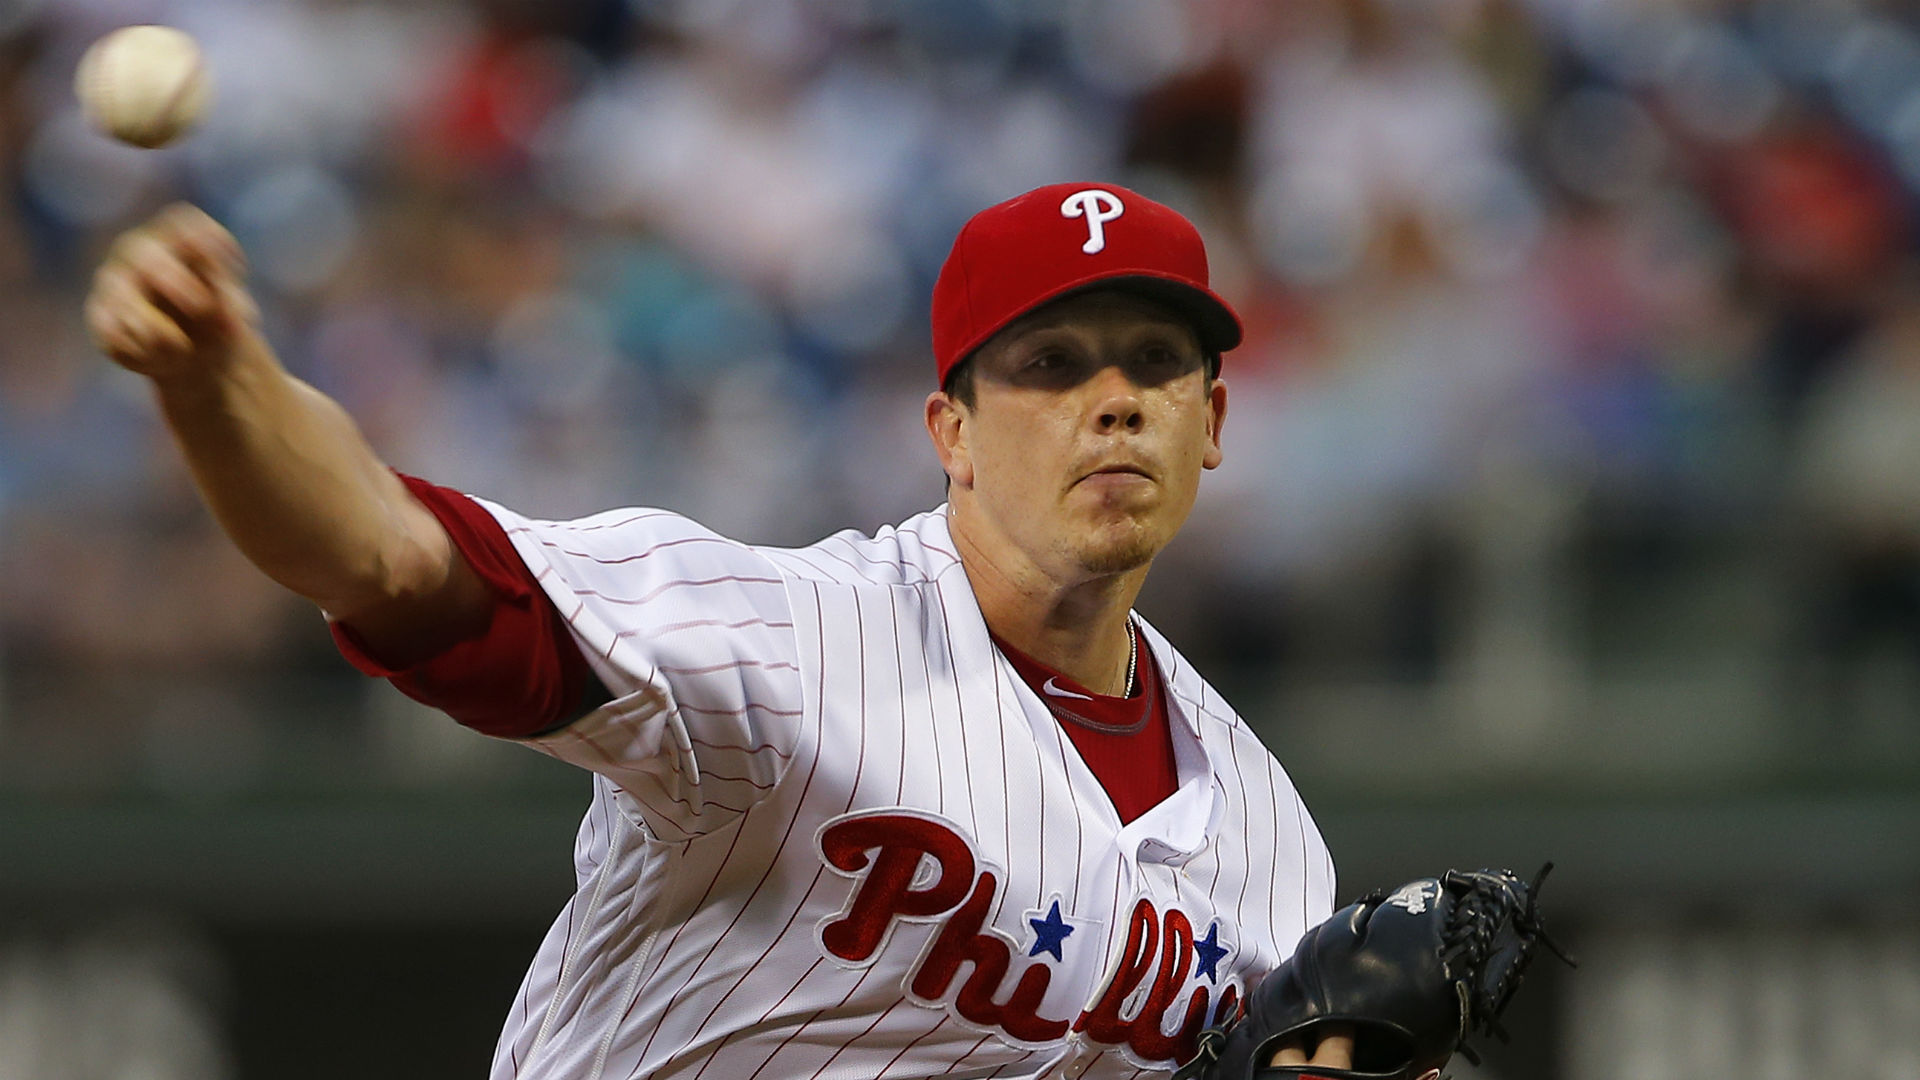 Jeremy Hellickson traded to the Balitmore Orioles